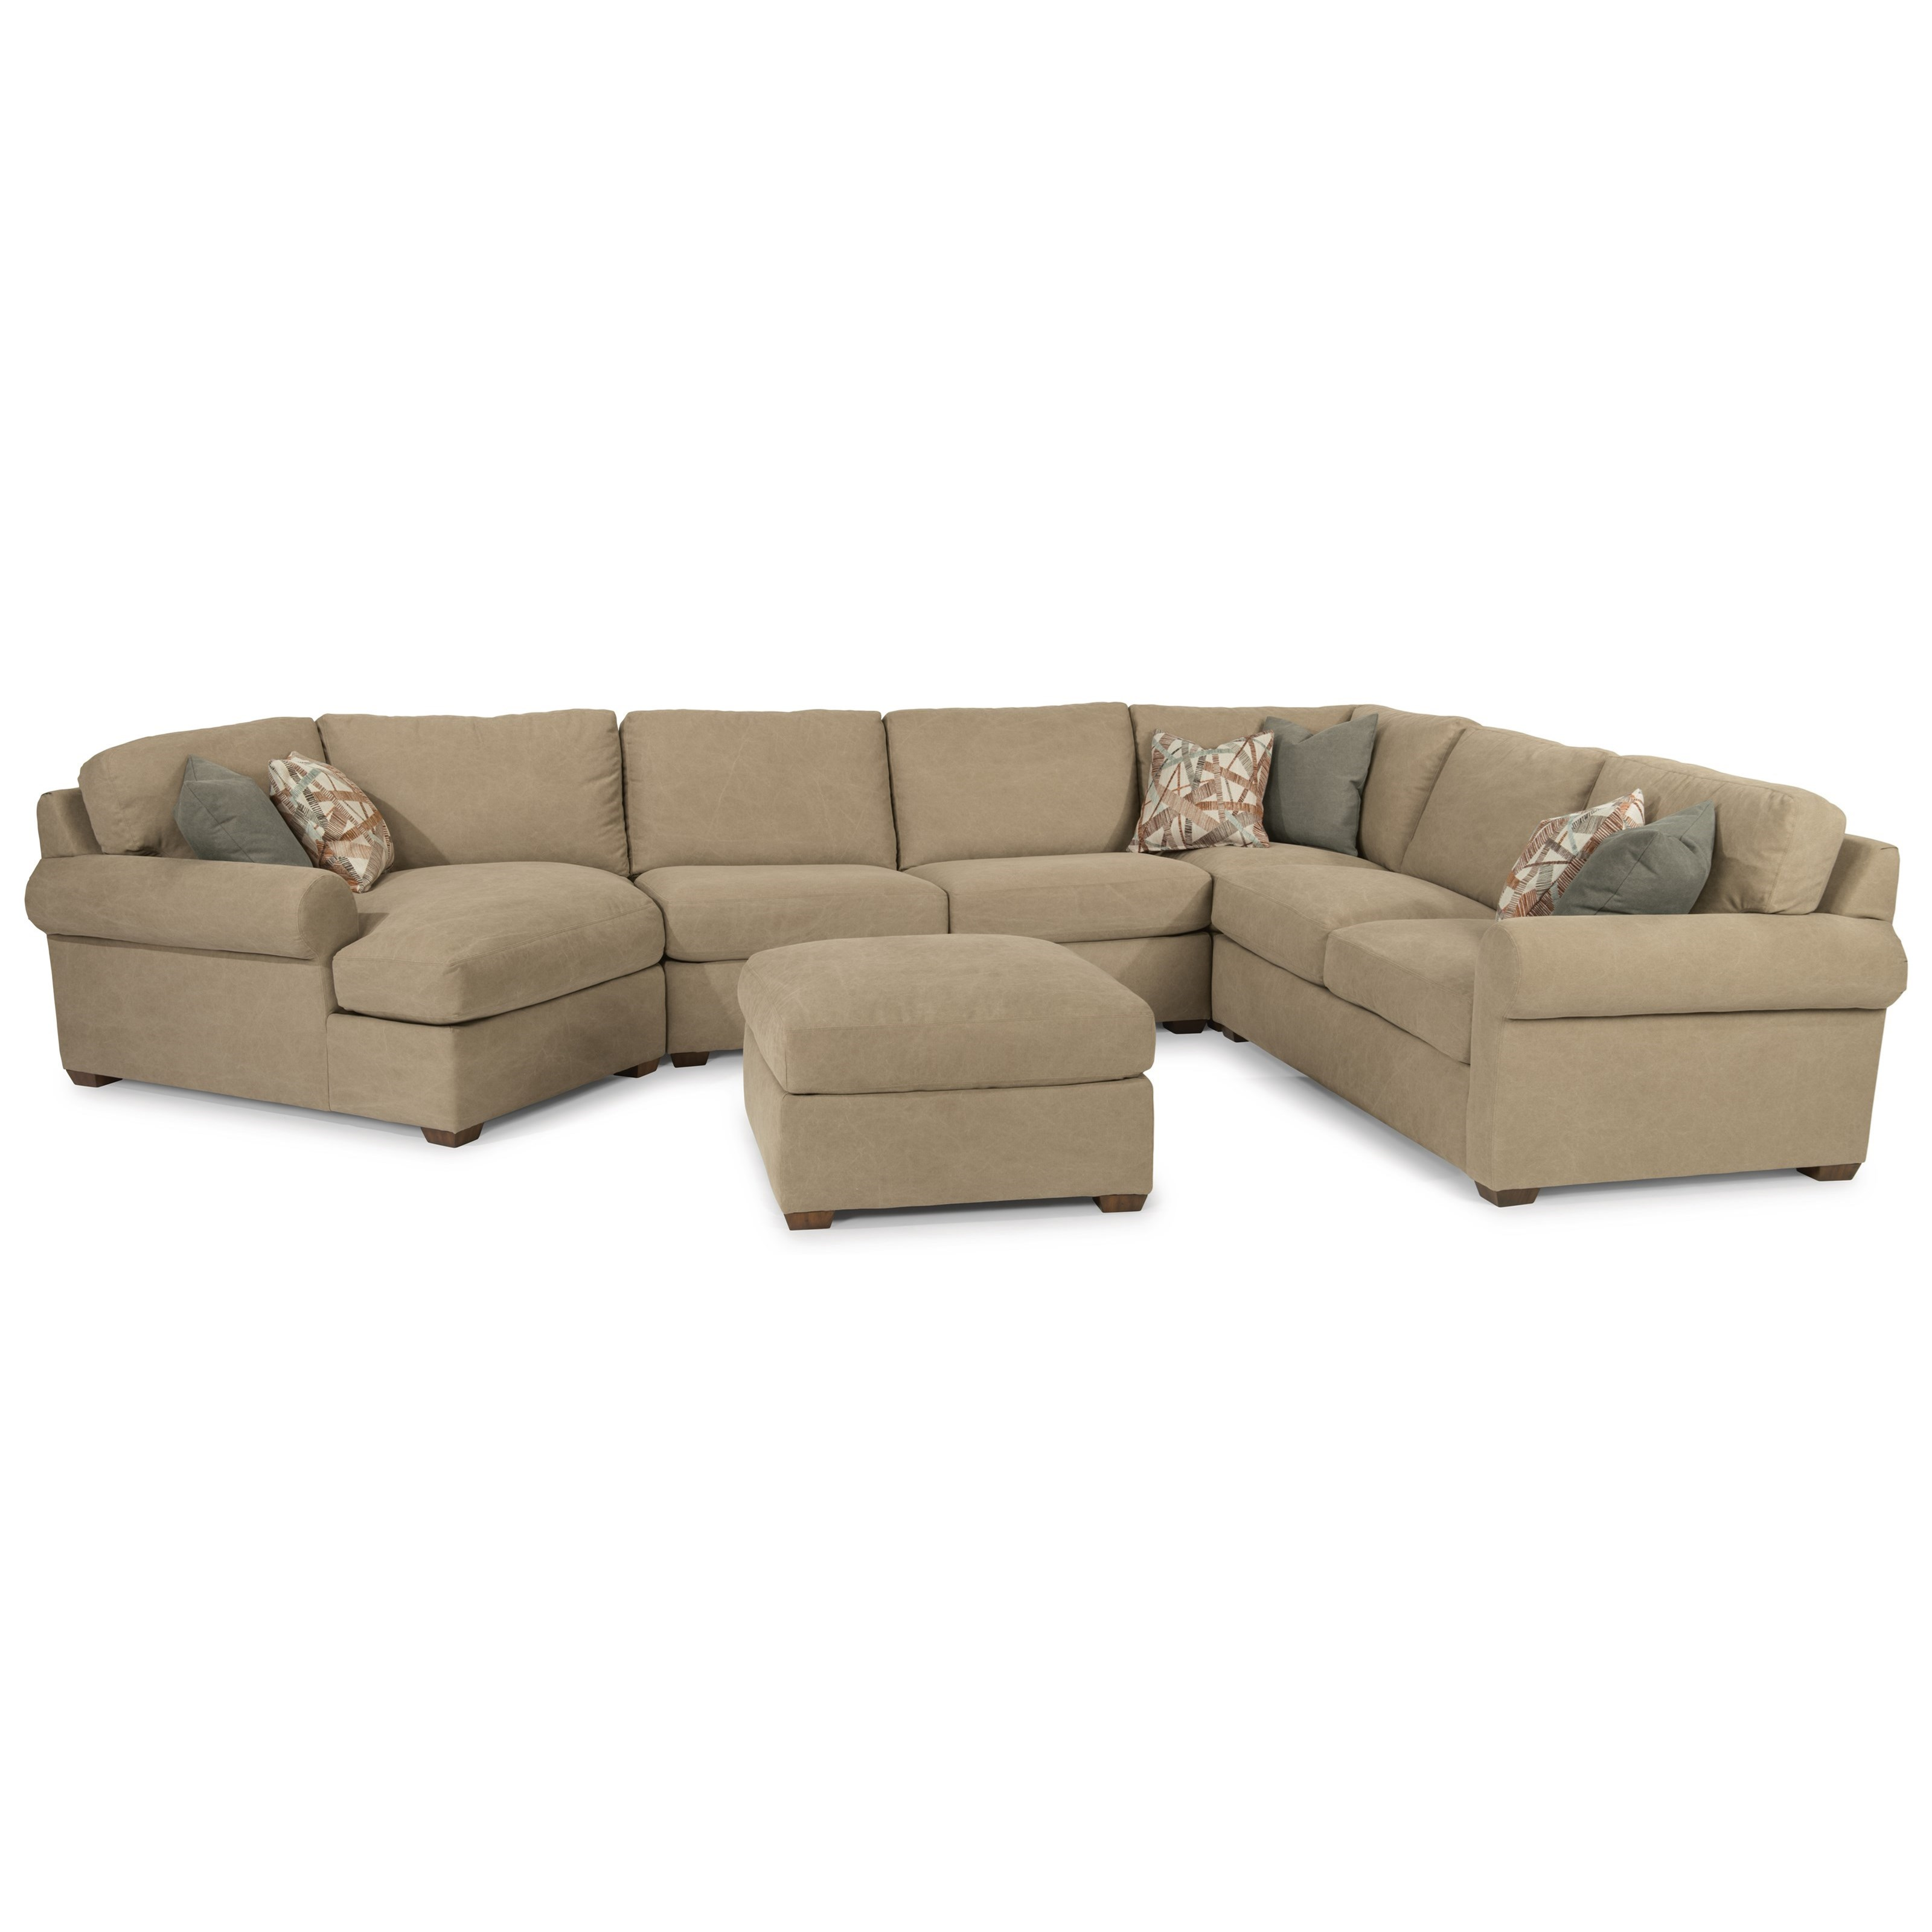 Randall 5 Seat Sectional by Flexsteel at Thornton Furniture